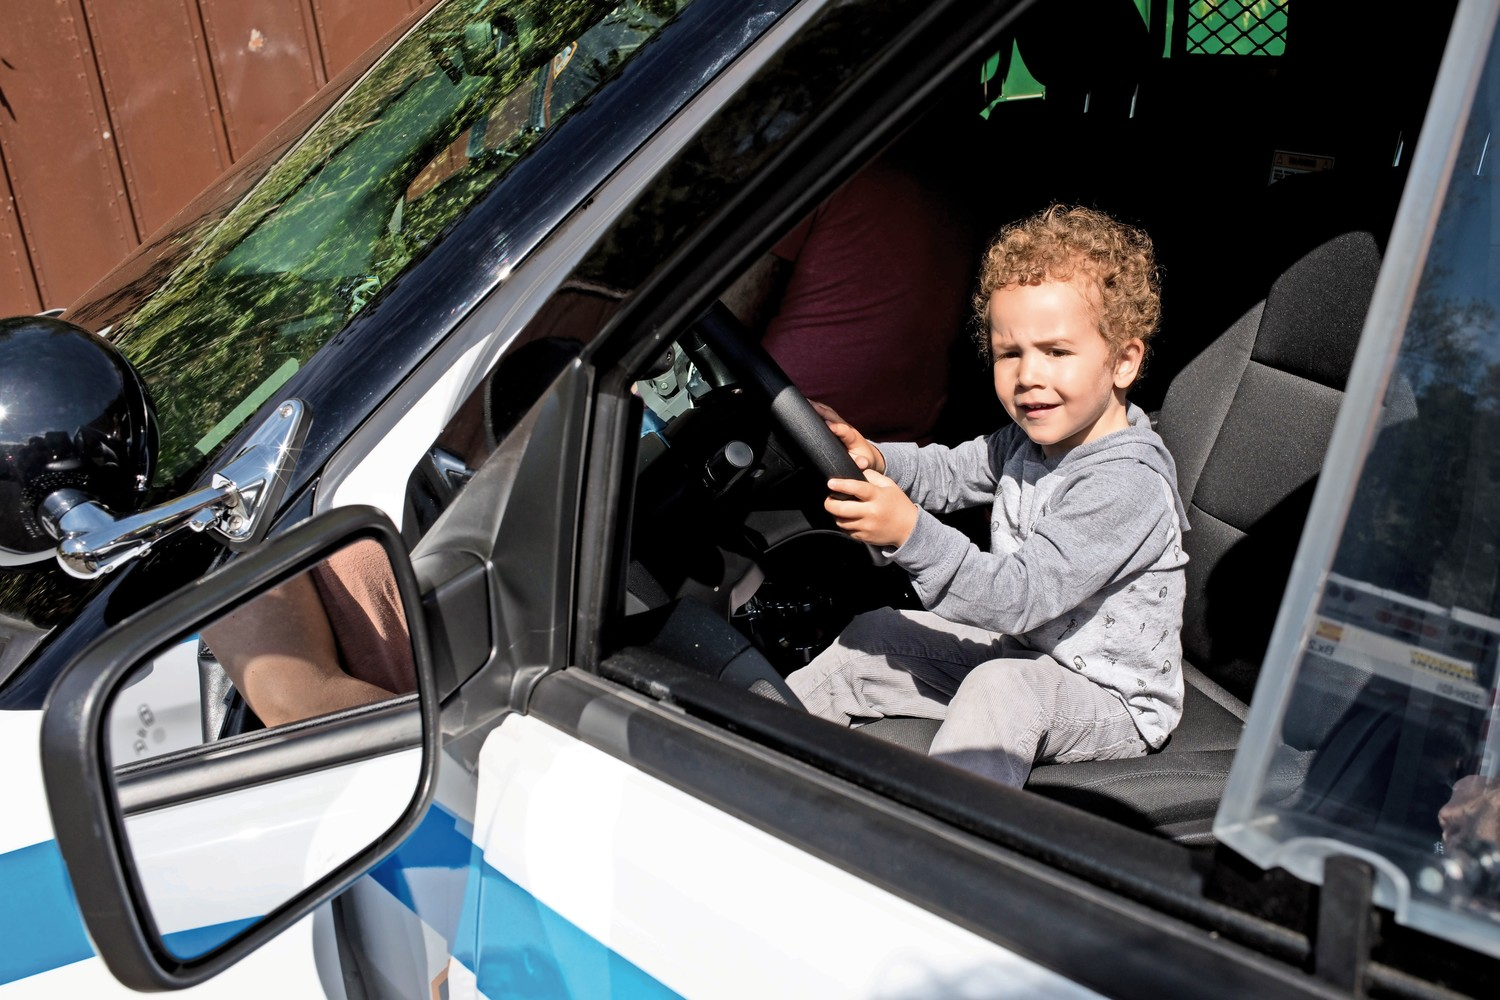 Cole Dunphy honks a police car's horn during Truck Day at the Riverdale Temple. Truck Day brings together vehicles from various municipal agencies, including the police, fire and sanitation departments.